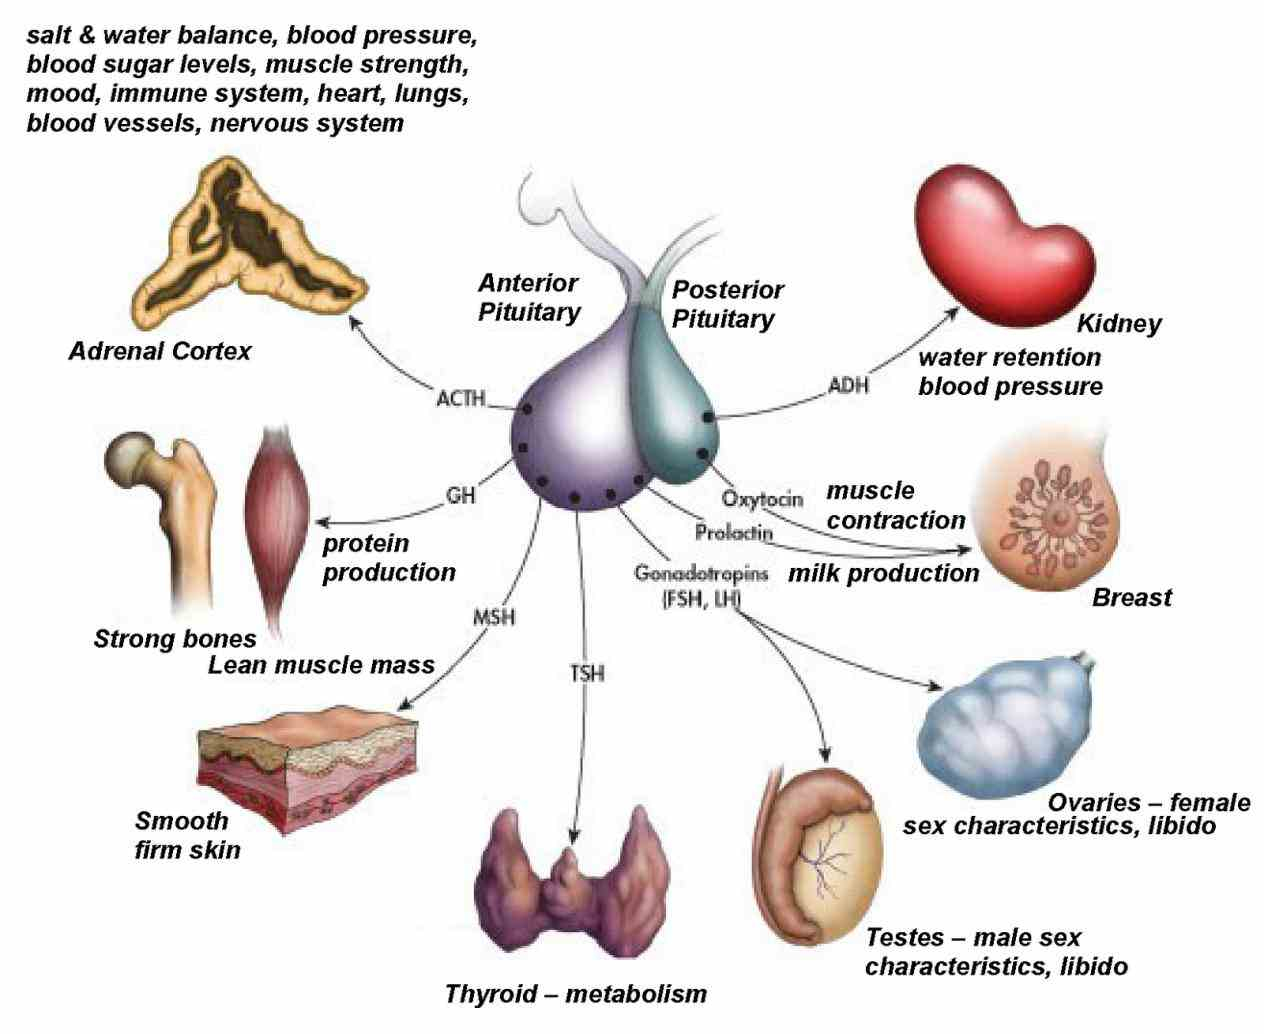 secrete cells to another coordinate functions different parts body the Endocrine System Functions And Parts human endocrine system –